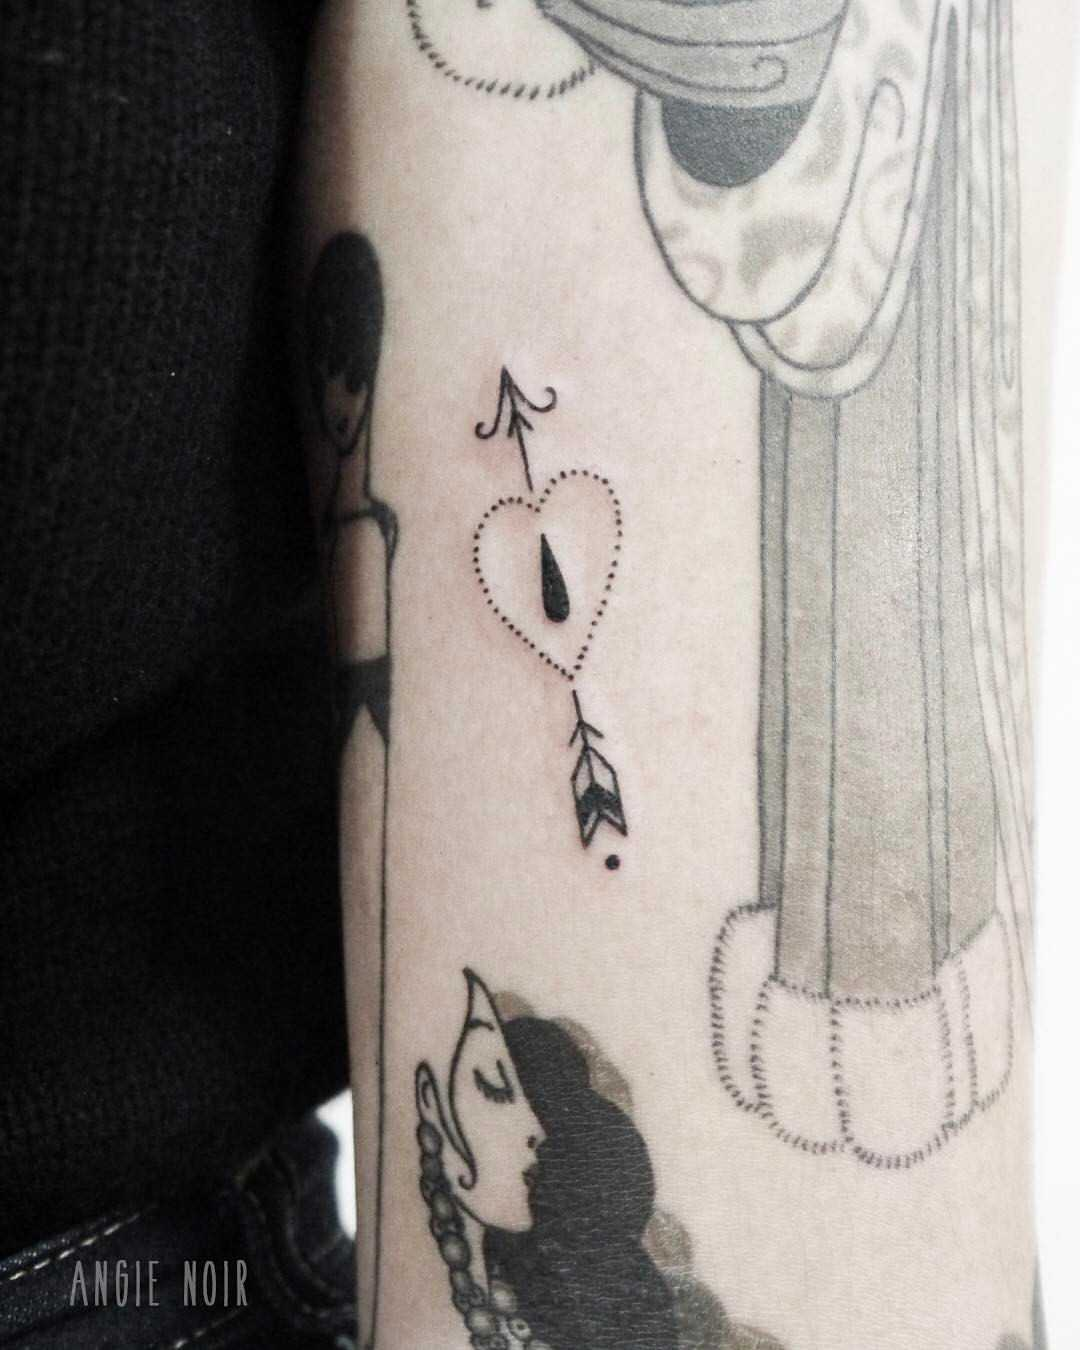 Heart and arrow tattoo by Angie Noir